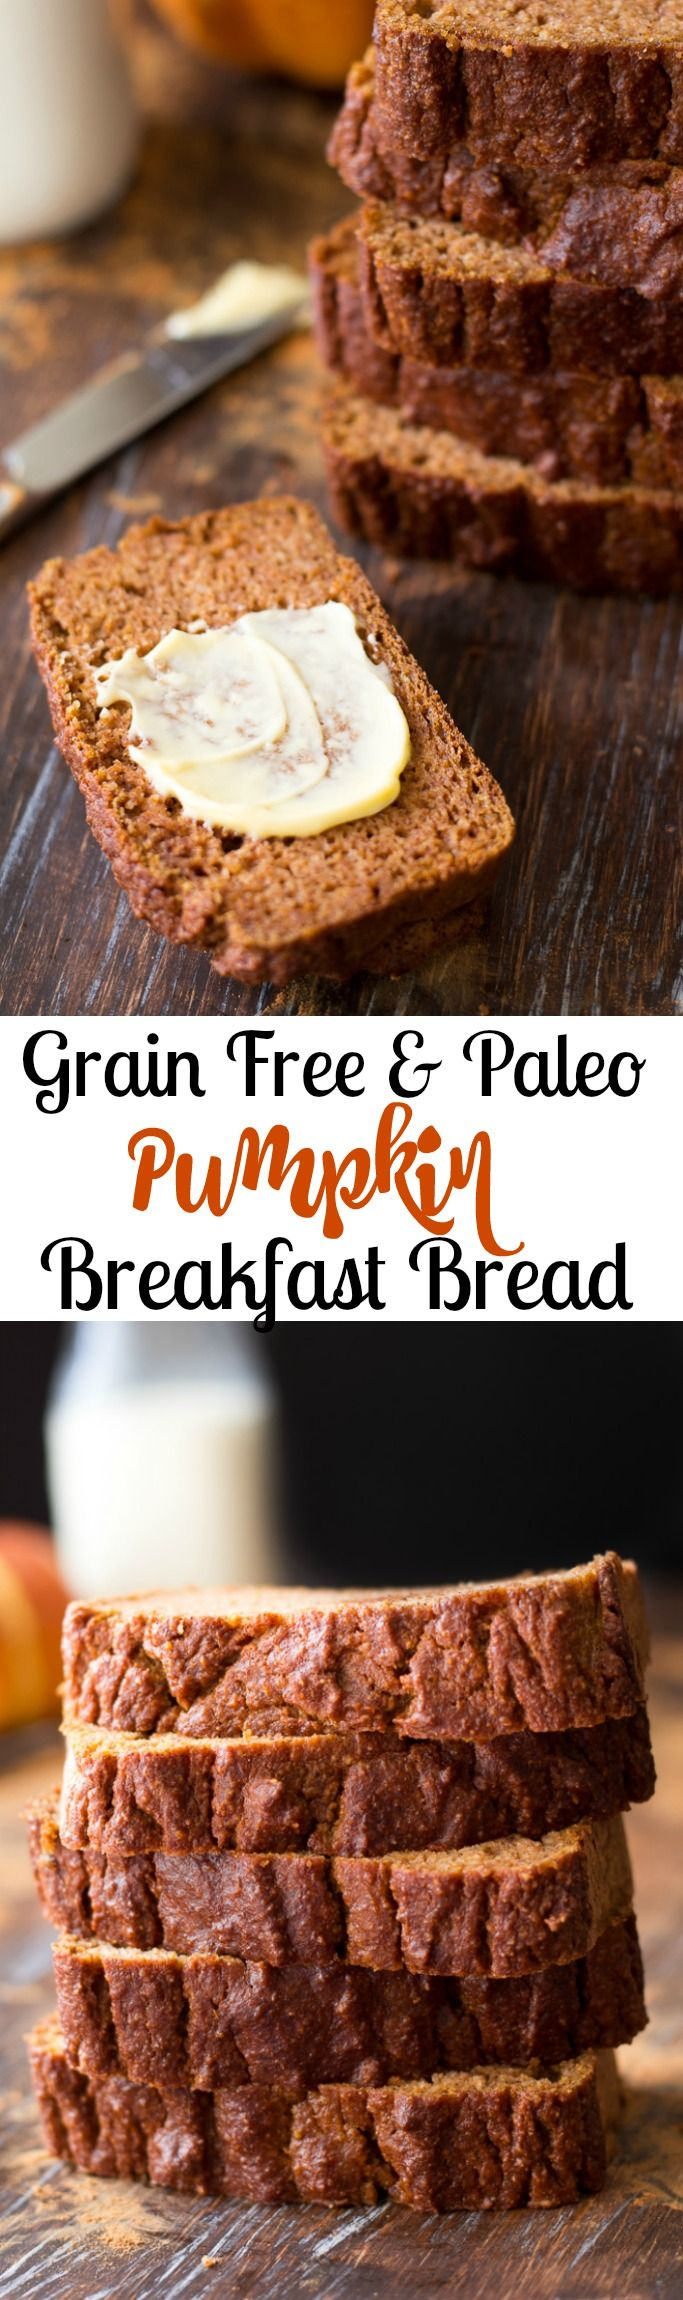 simple grain free and paleo pumpkin bread great for breakfast! Gluten free, grain free, dairy free tender yet hearty and healthy Paleo pumpkin bread loaded with sweet pumpkin spice!